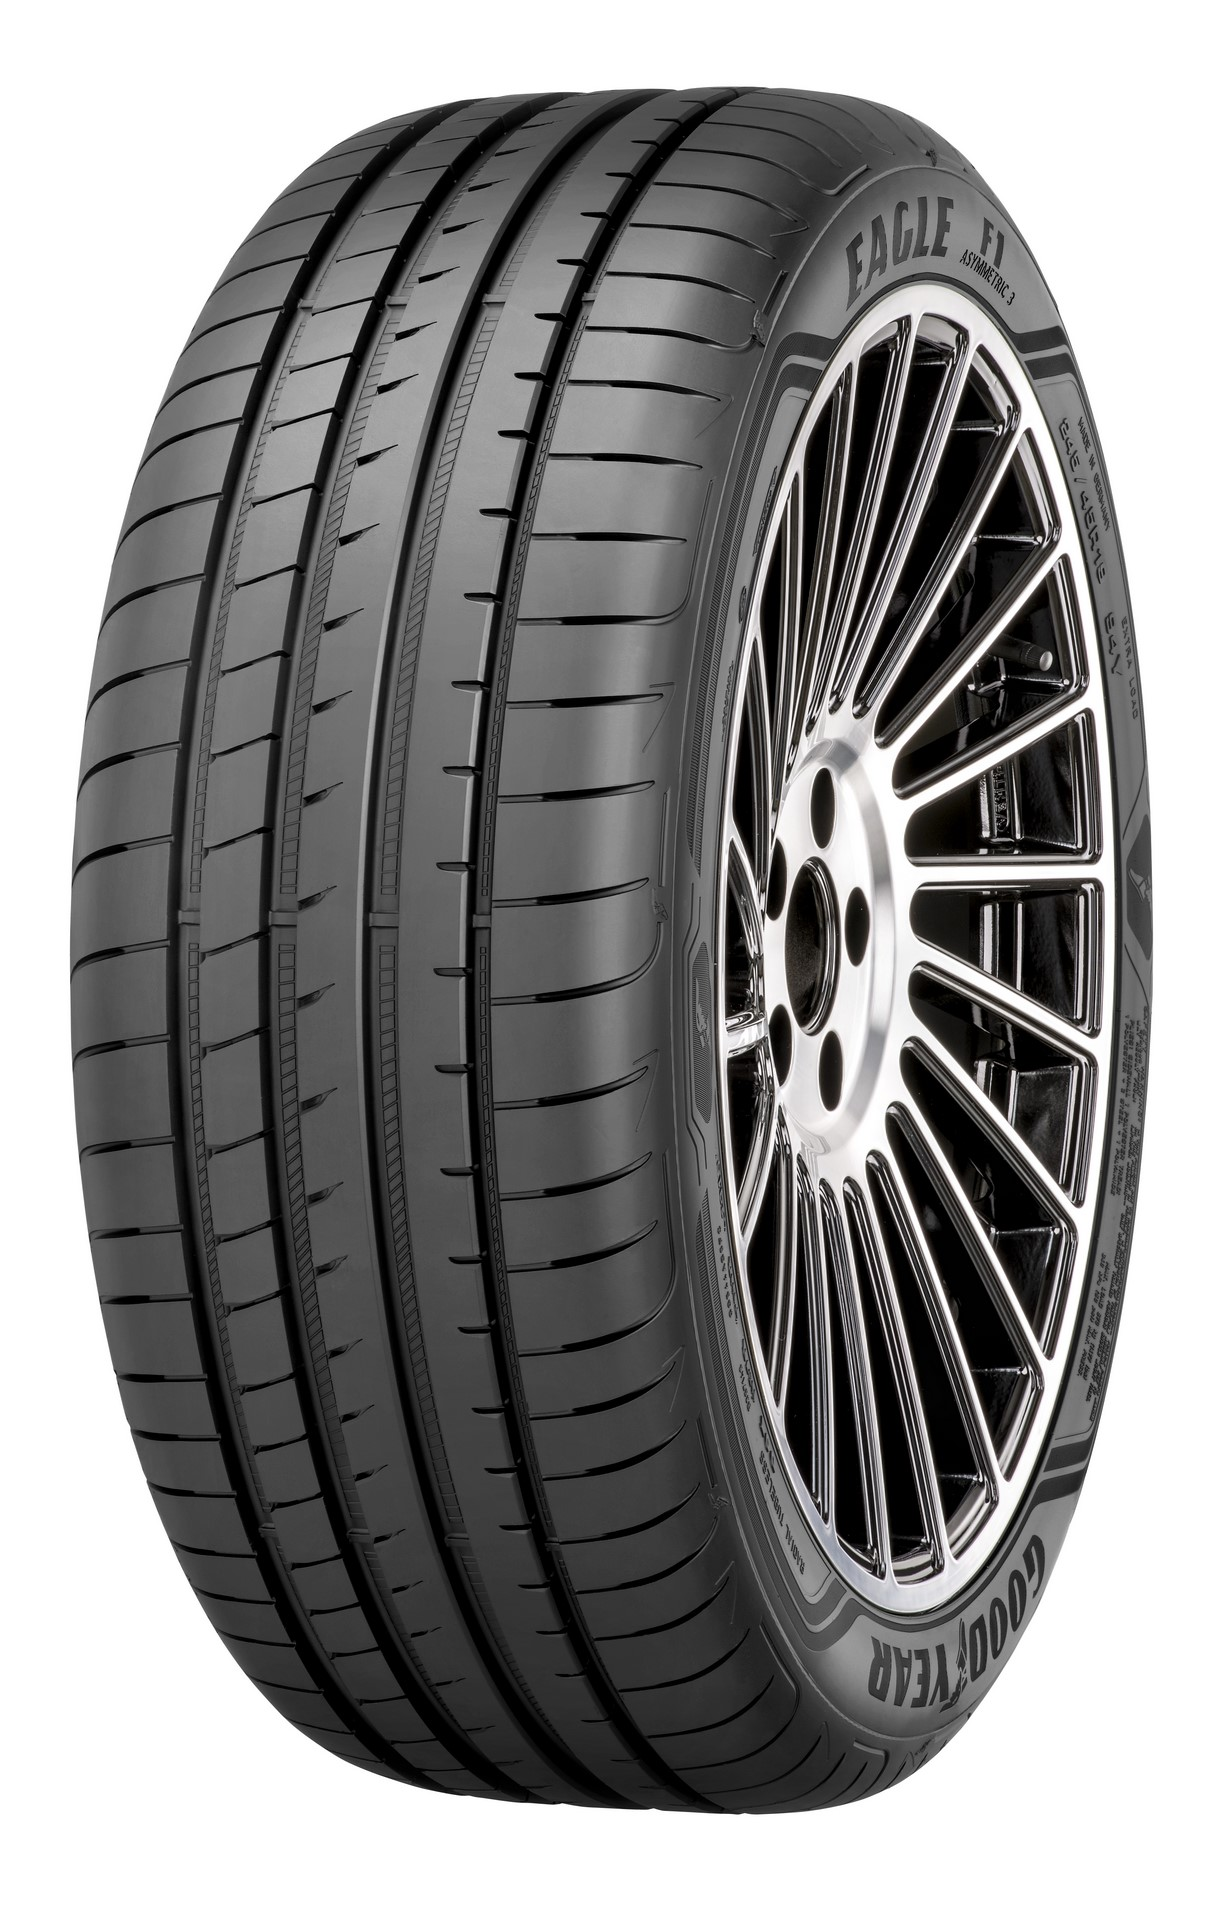 Goodyear Intelligent Tire (5)